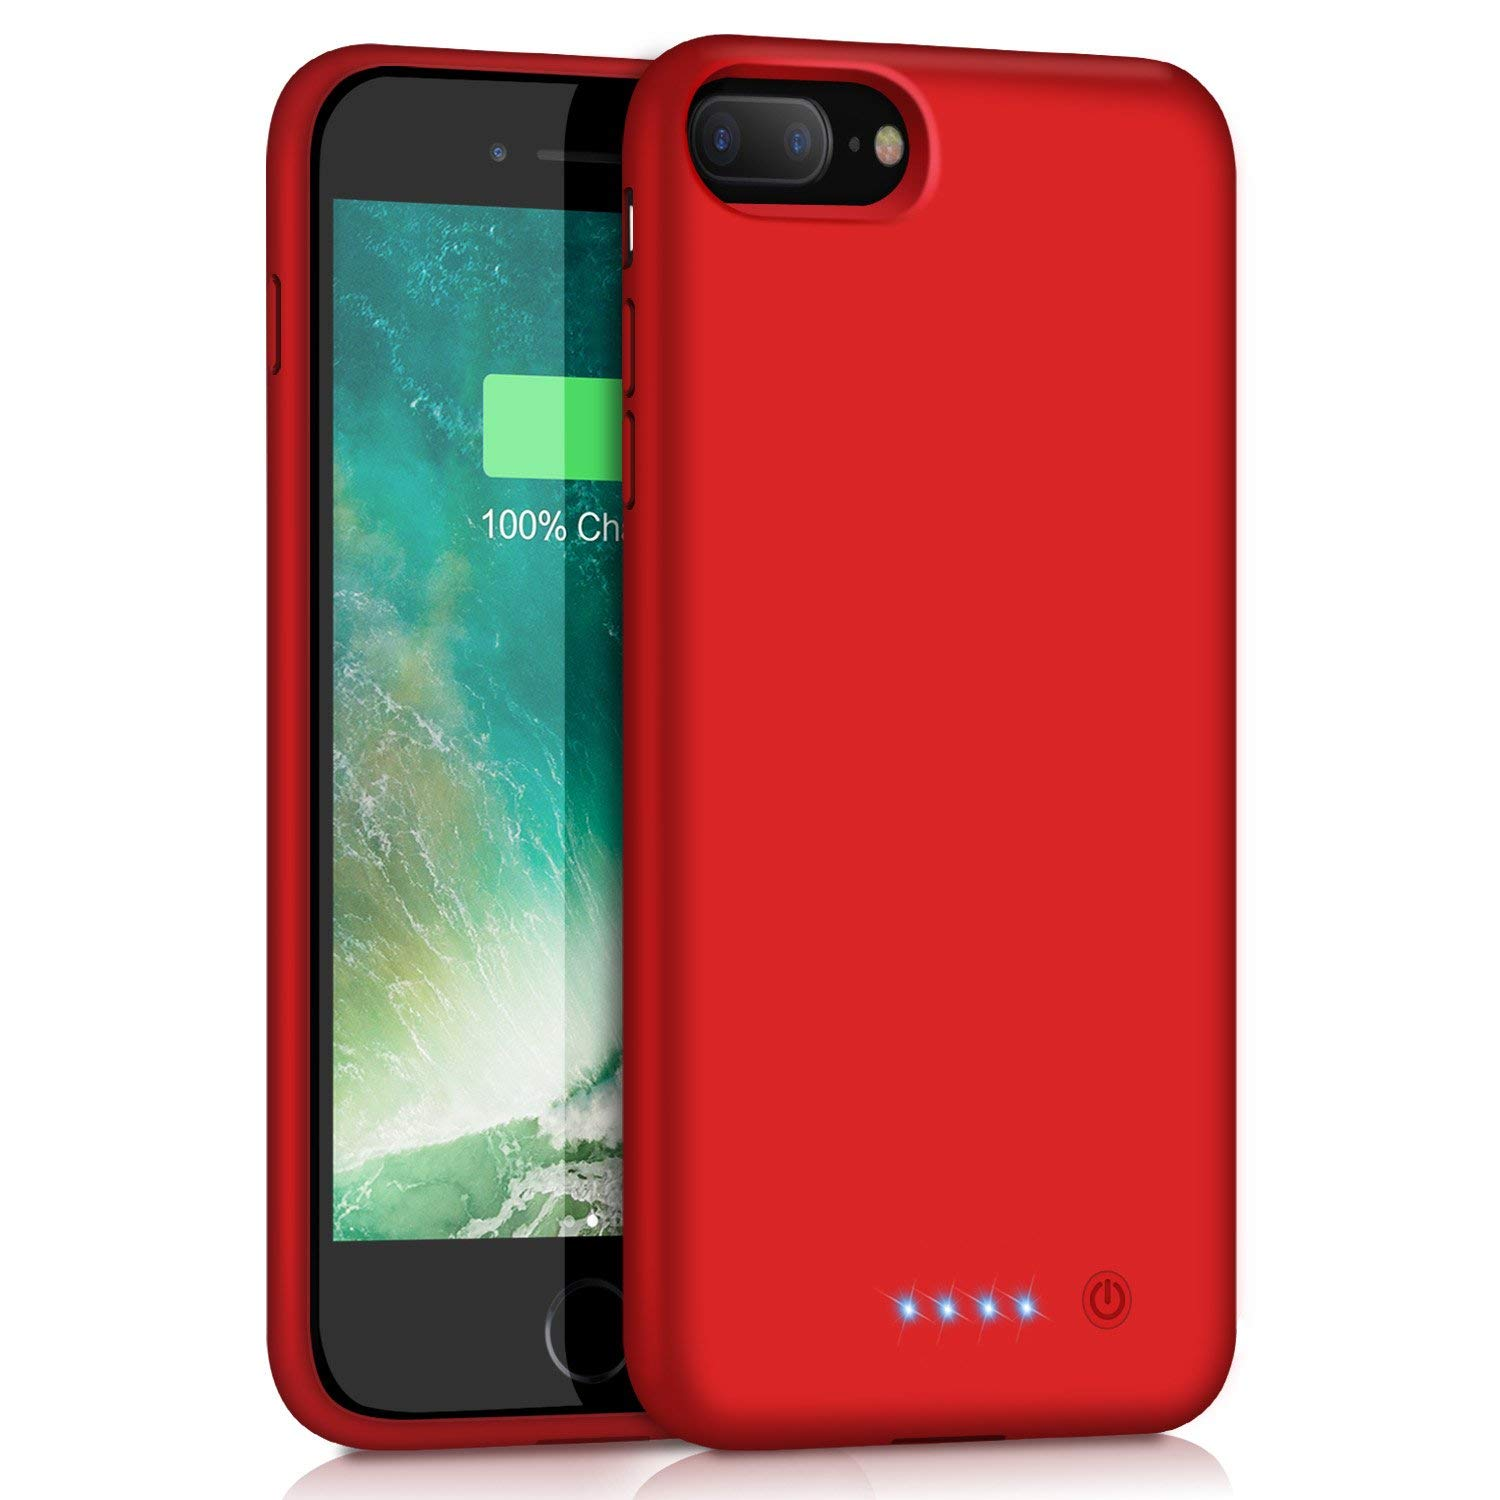 VOOE Portable Rechargeable Protective External